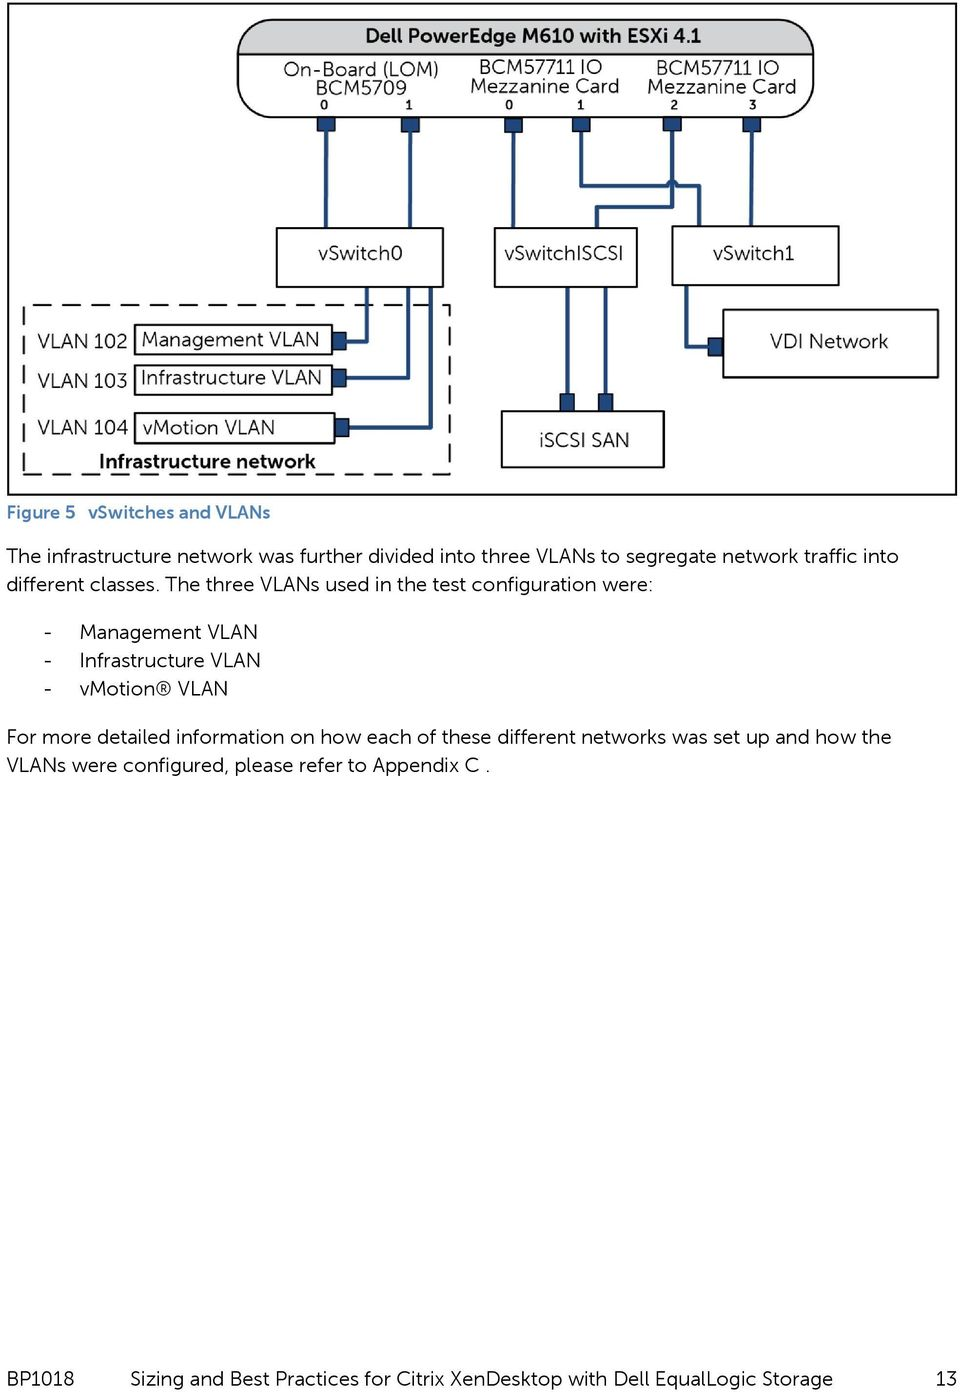 The three VLANs used in the test configuration were: - Management VLAN - Infrastructure VLAN - vmotion VLAN For more